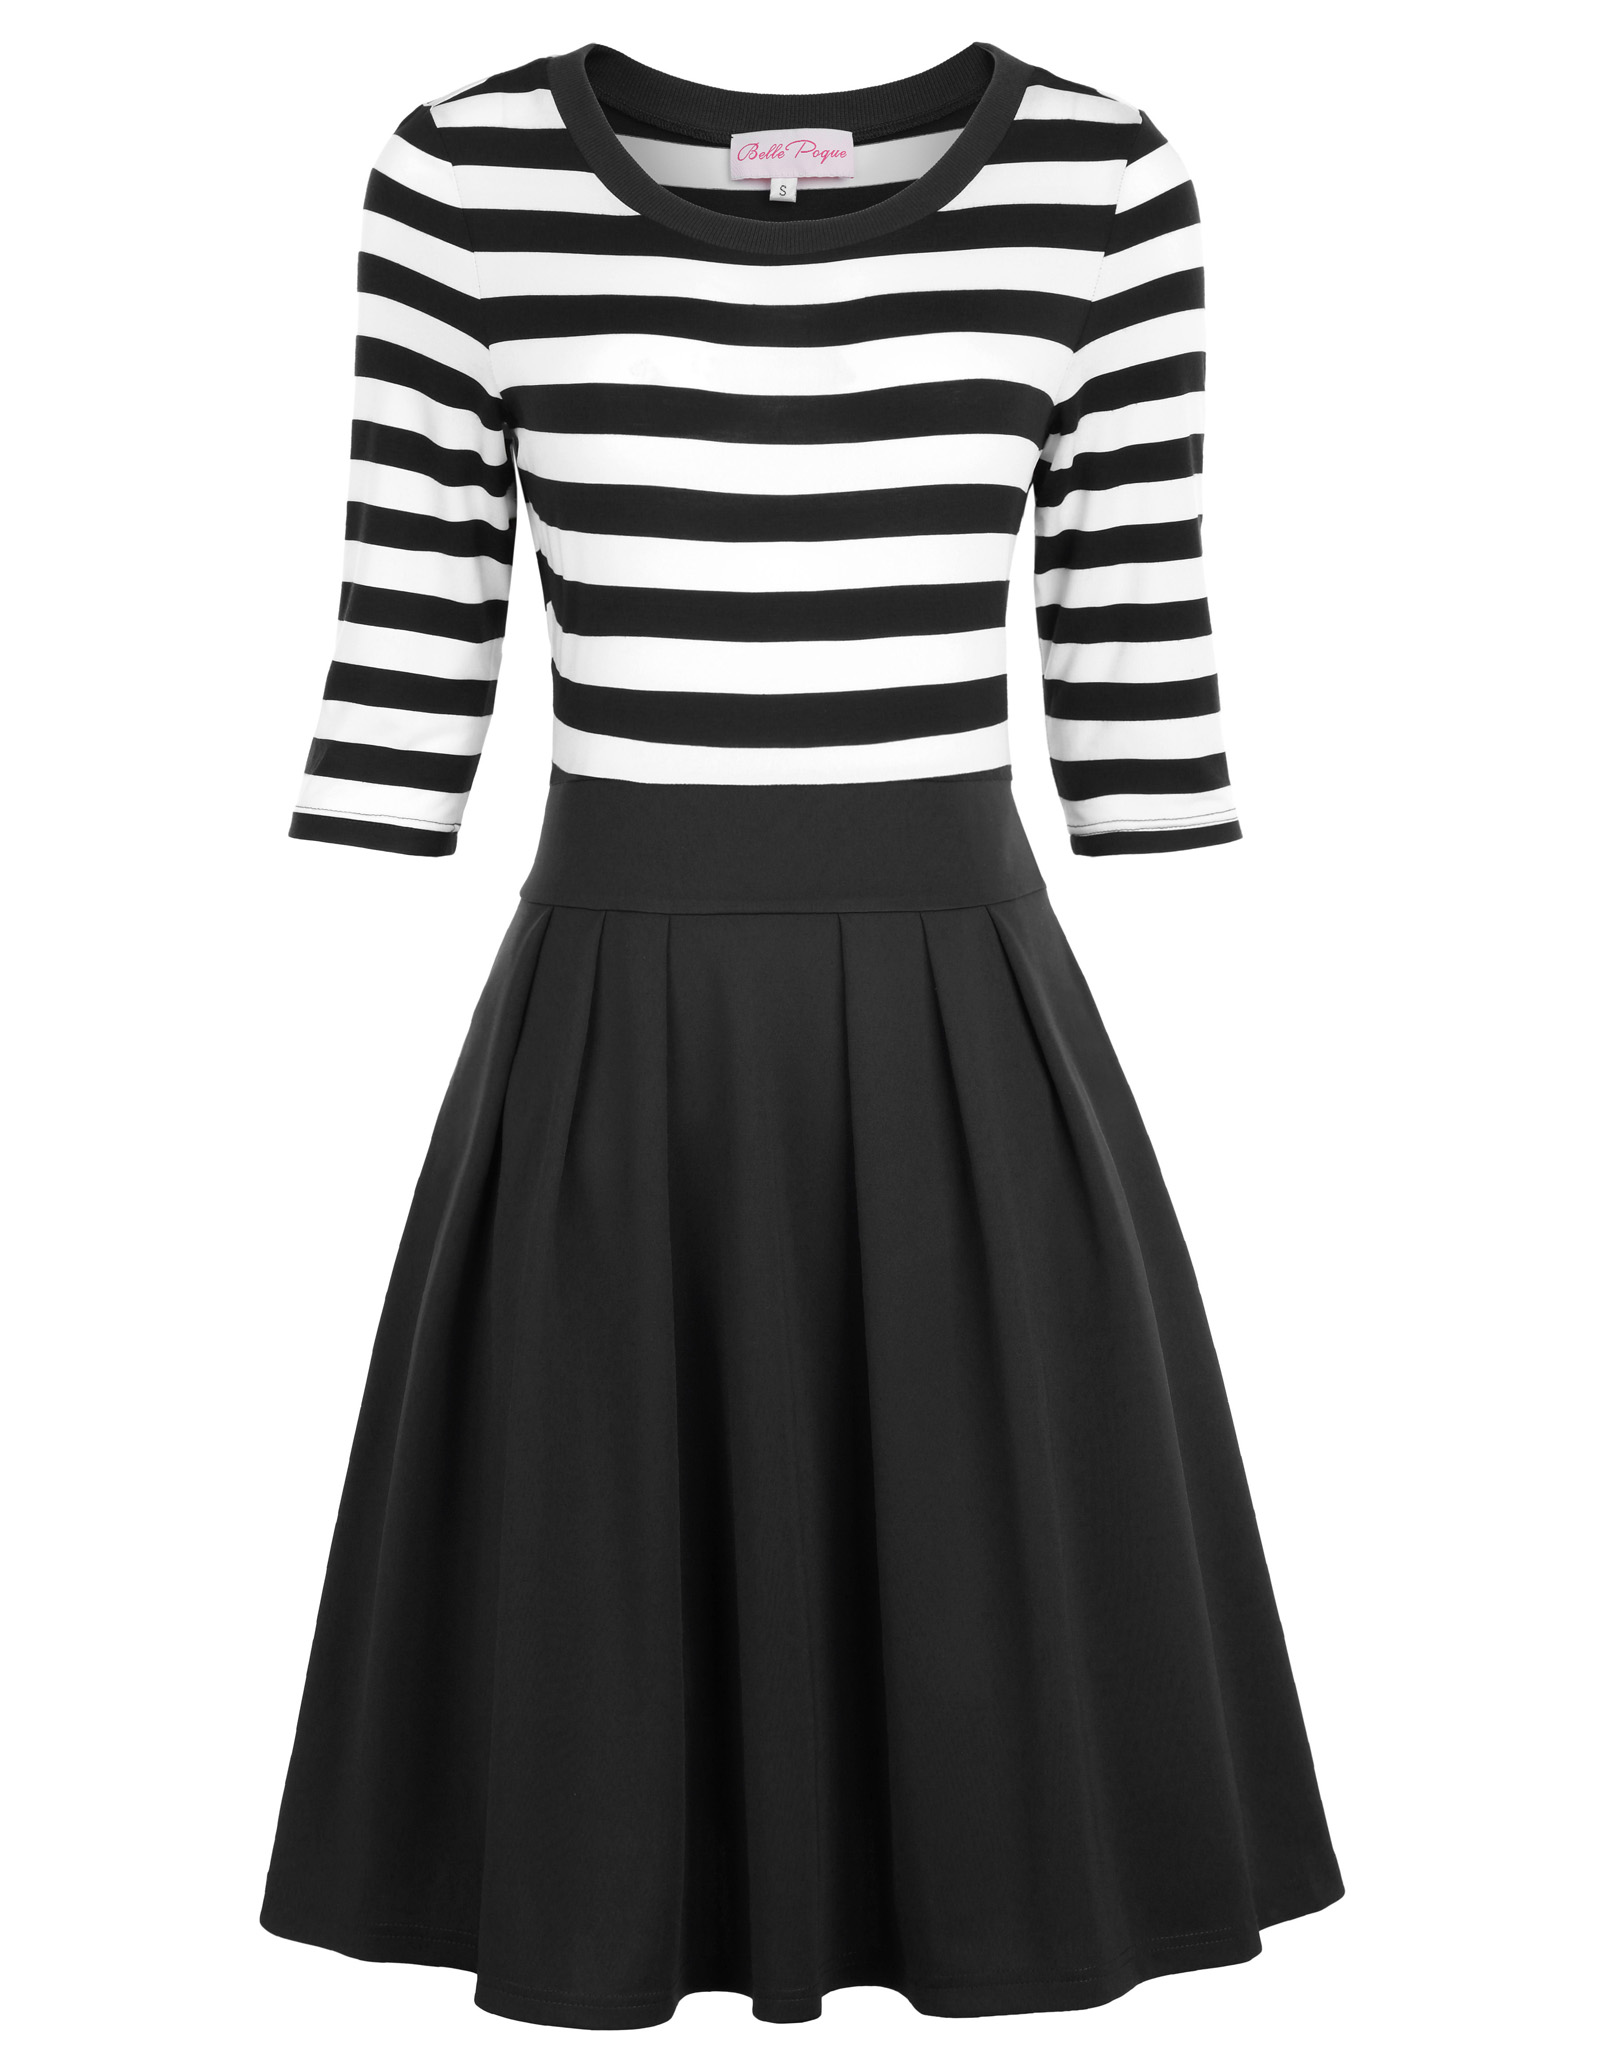 Belle Poque Retro Women Striped 3/4 Sleeve A line Dress Flared Party Dress